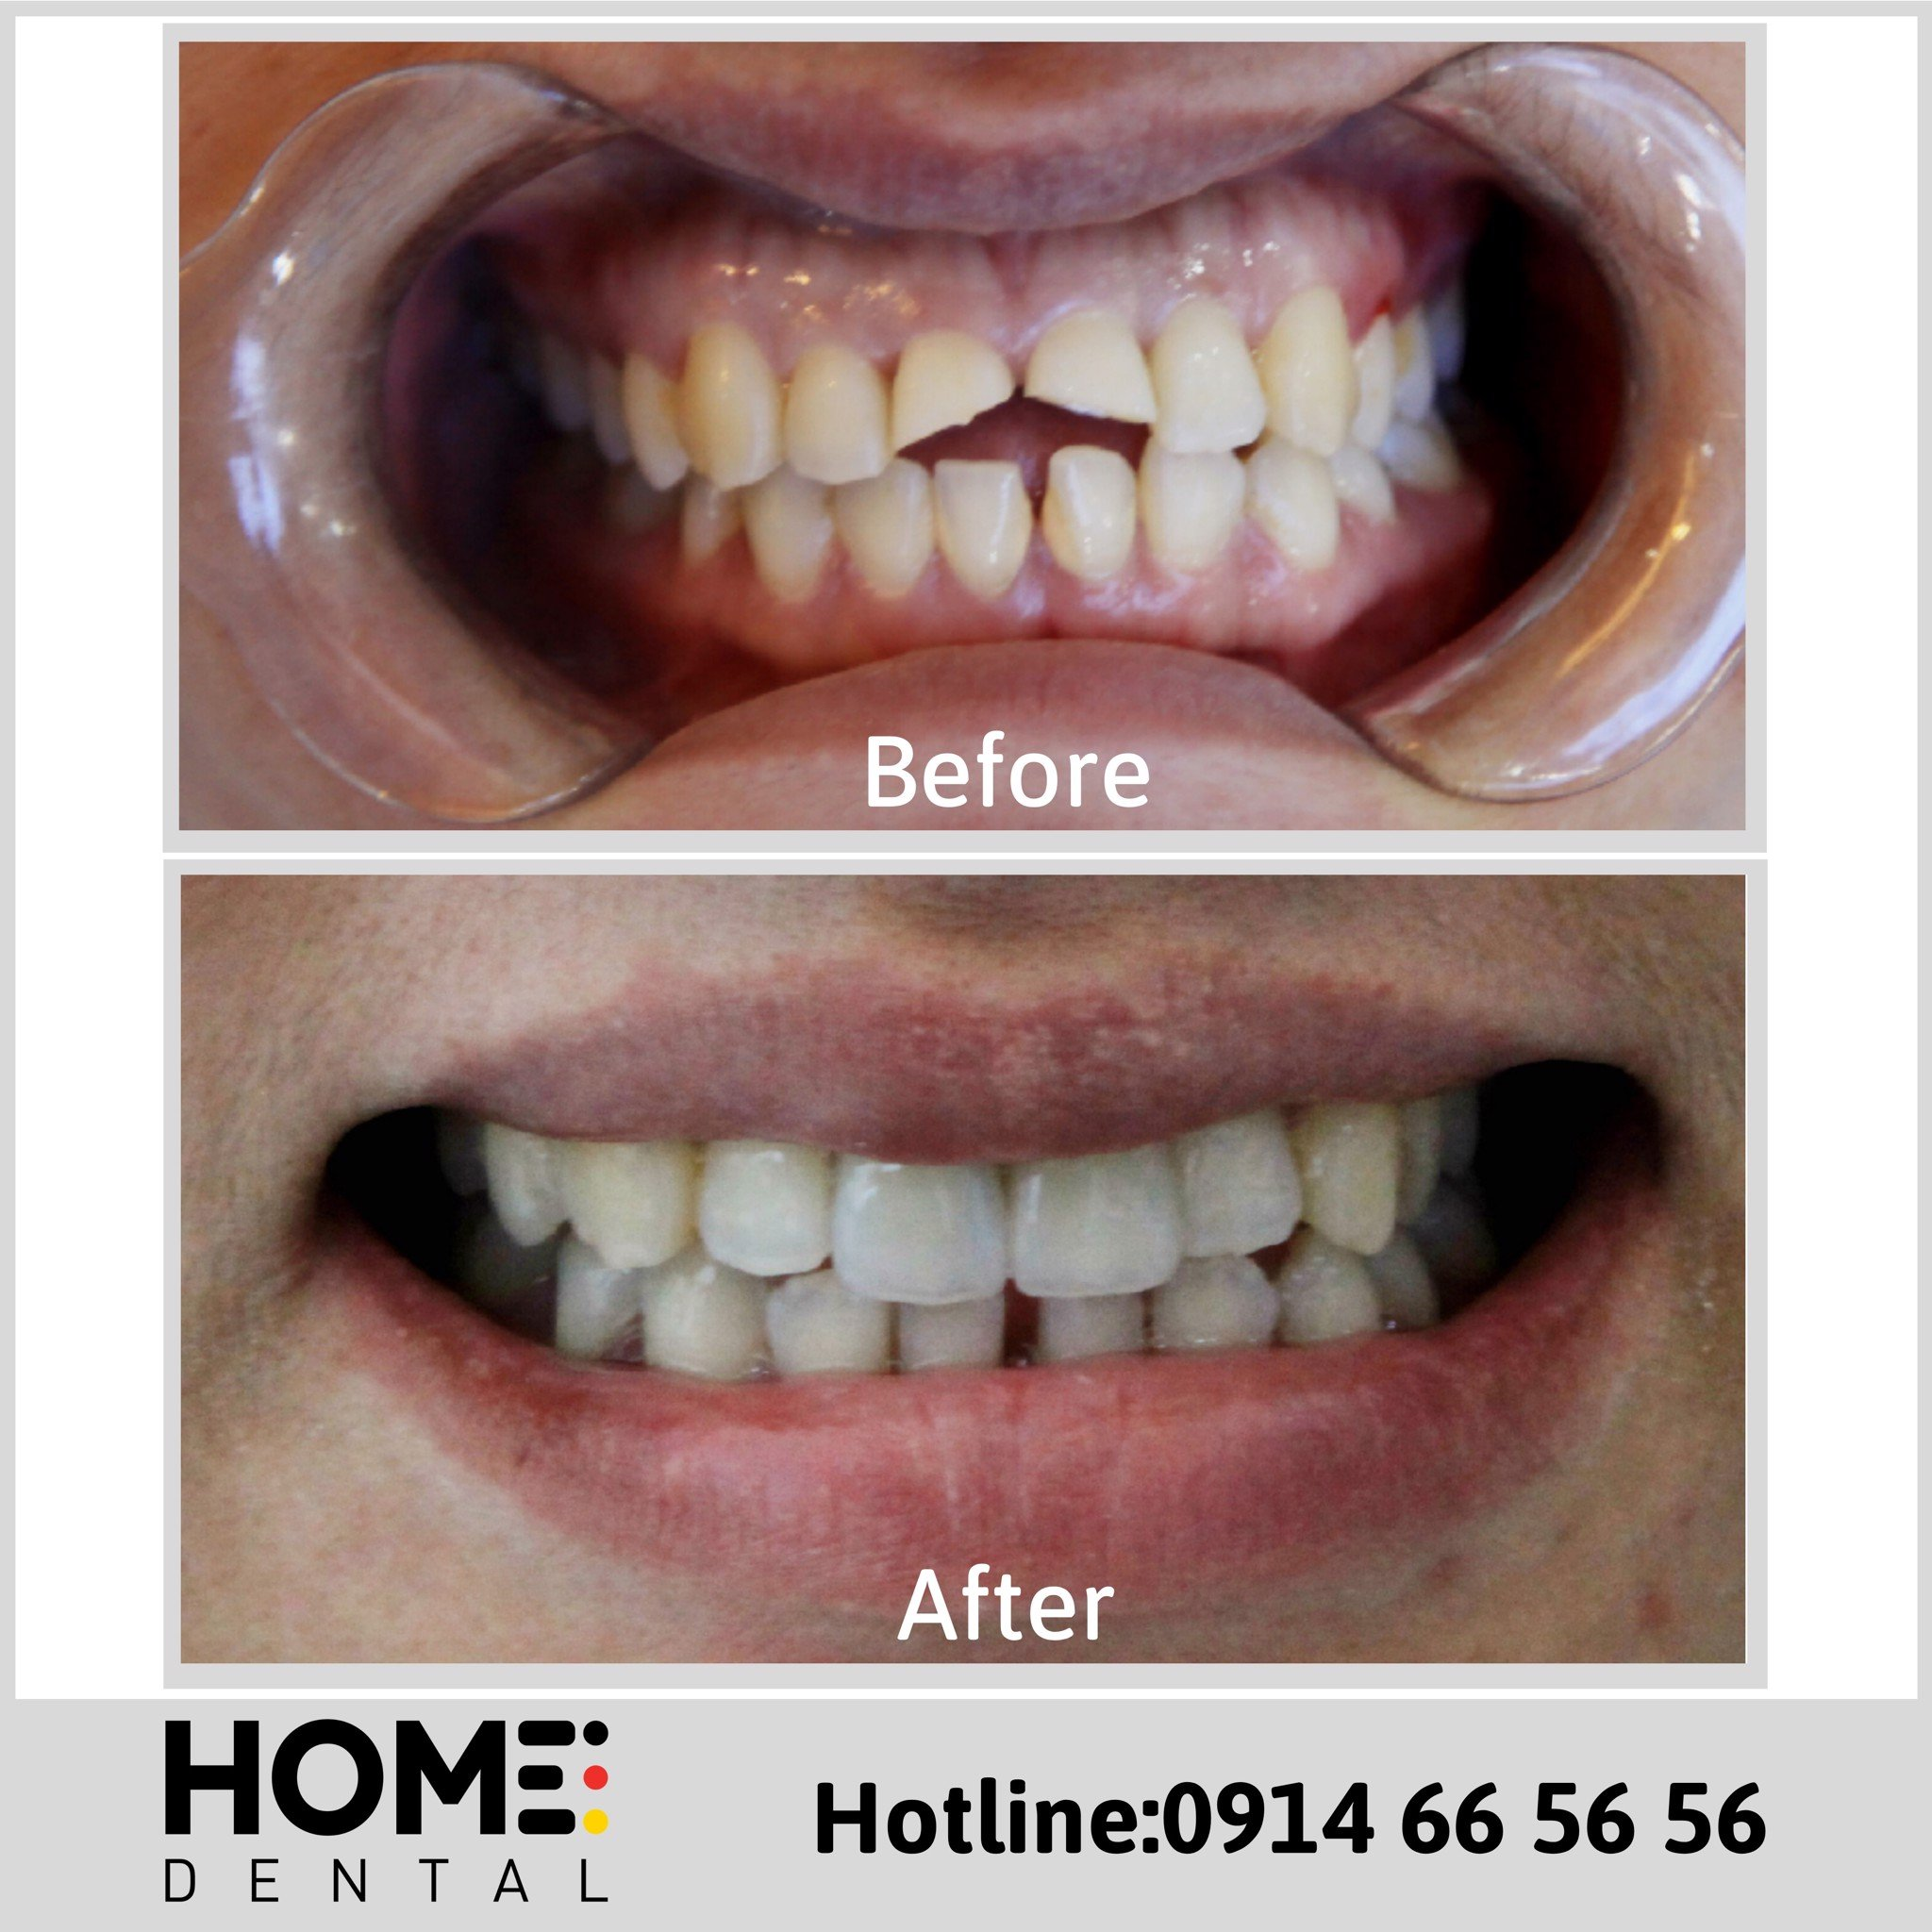 PORCELAIN CROWNS & LAMINATE VENEERS 3